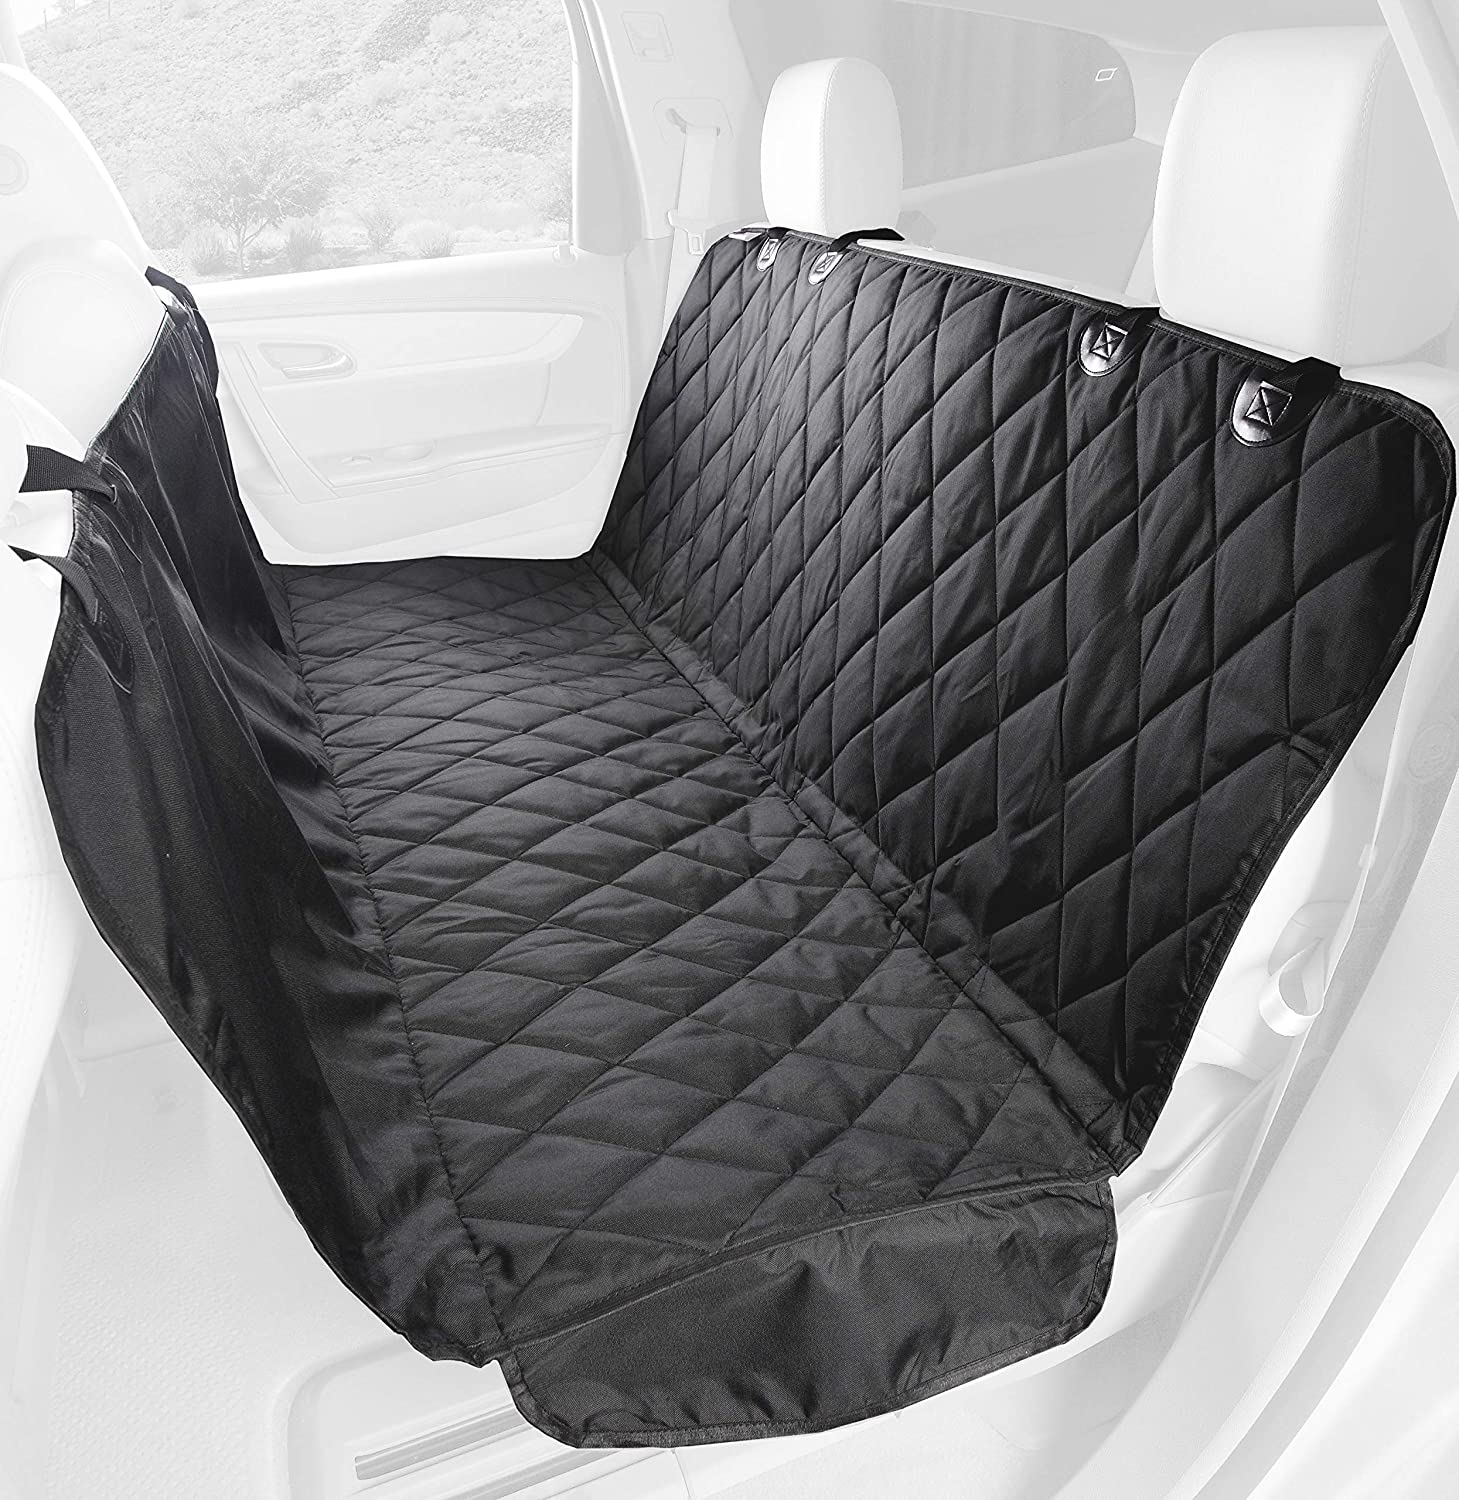 4Knines Dog Seat Cover with Hammock for Cars, Trucks and SUVs – Heavy Duty, Non Slip, Waterproof – USA Based